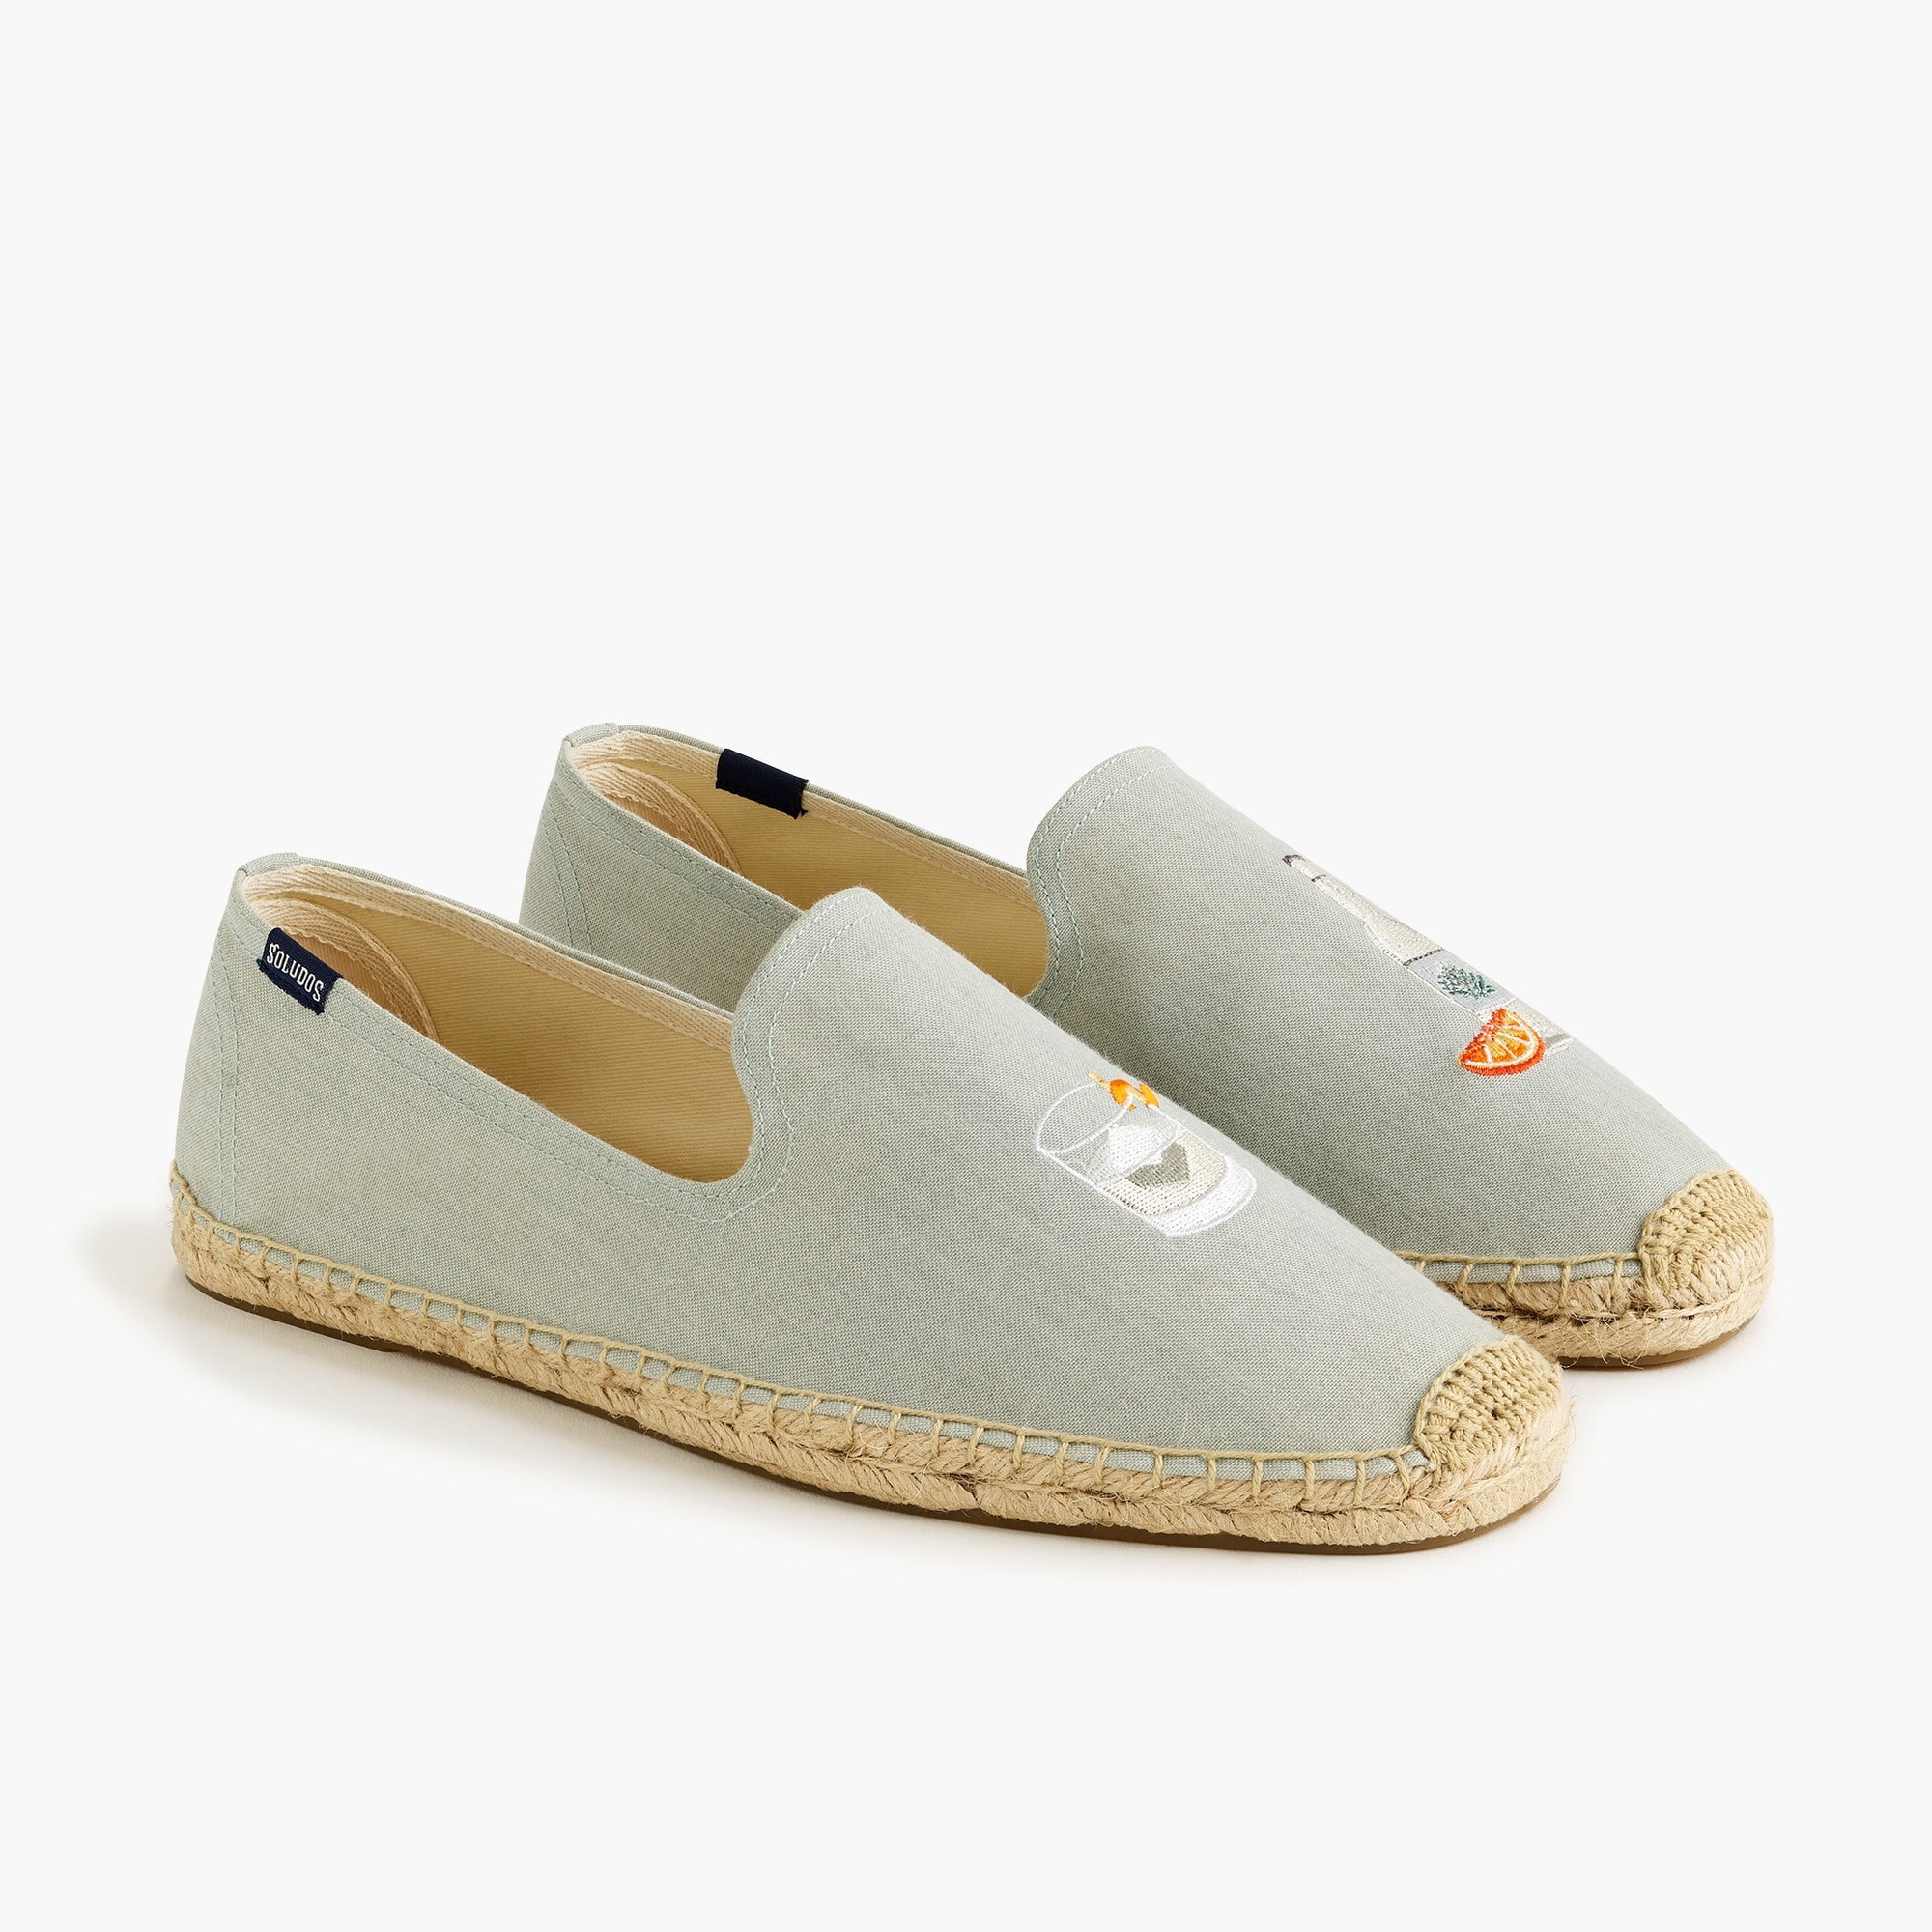 mens Soludos canvas smoking slipper in chambray